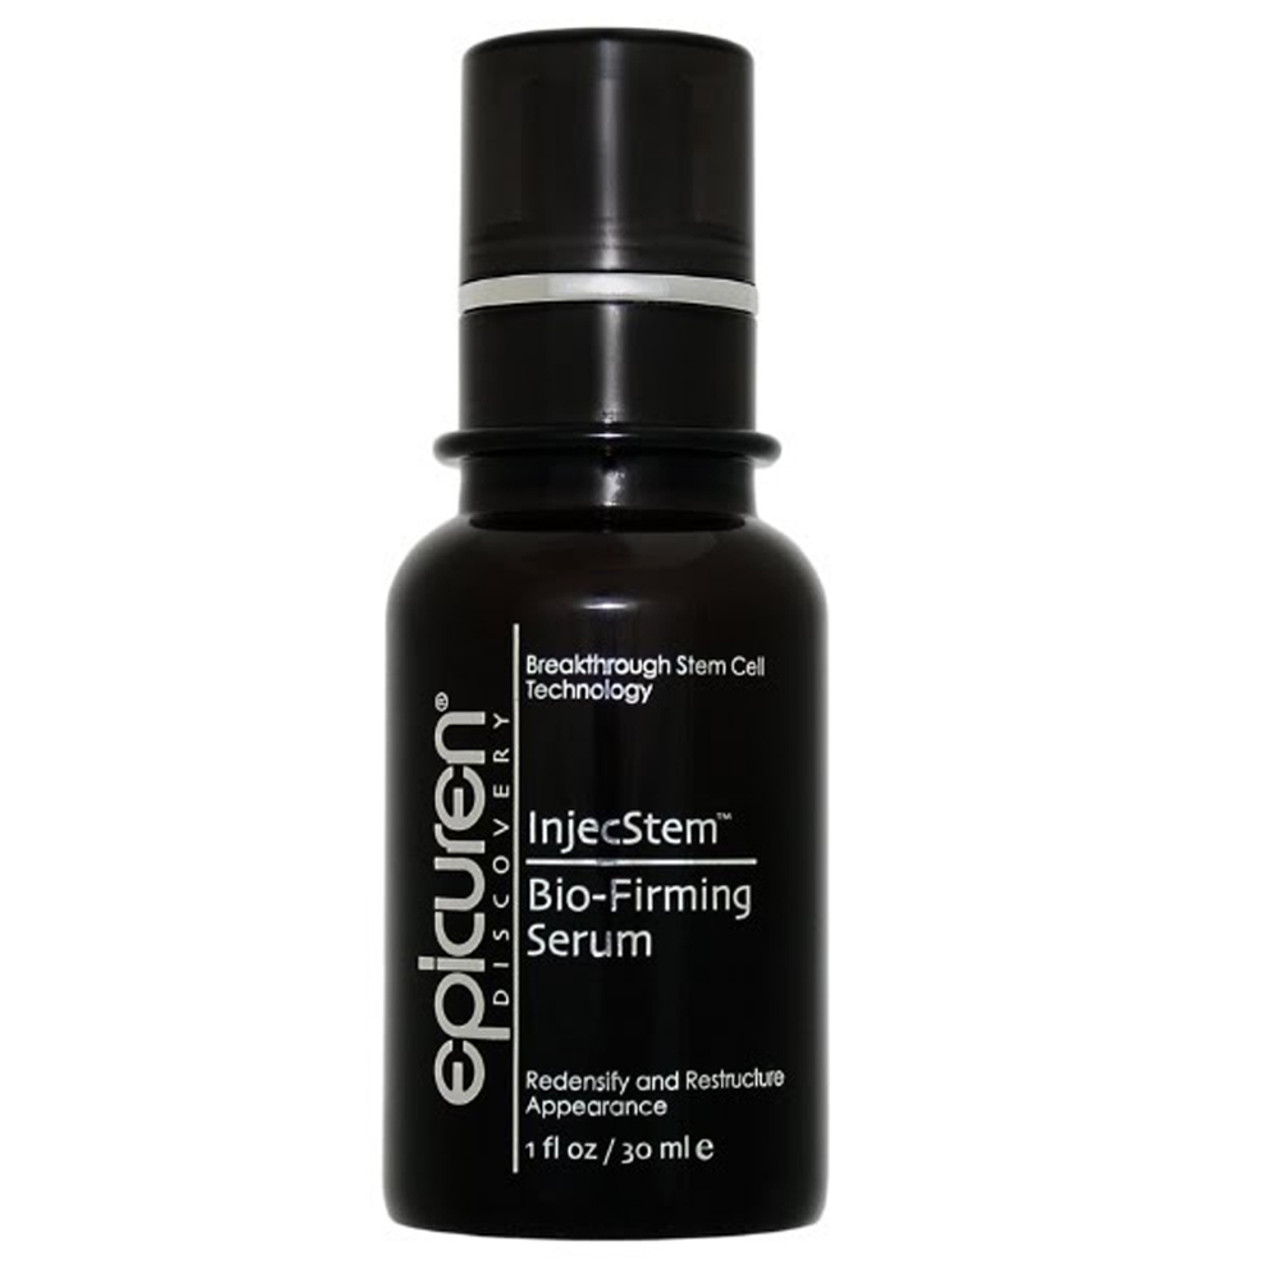 epicuren Discovery InjecStem Bio-Firming Serum